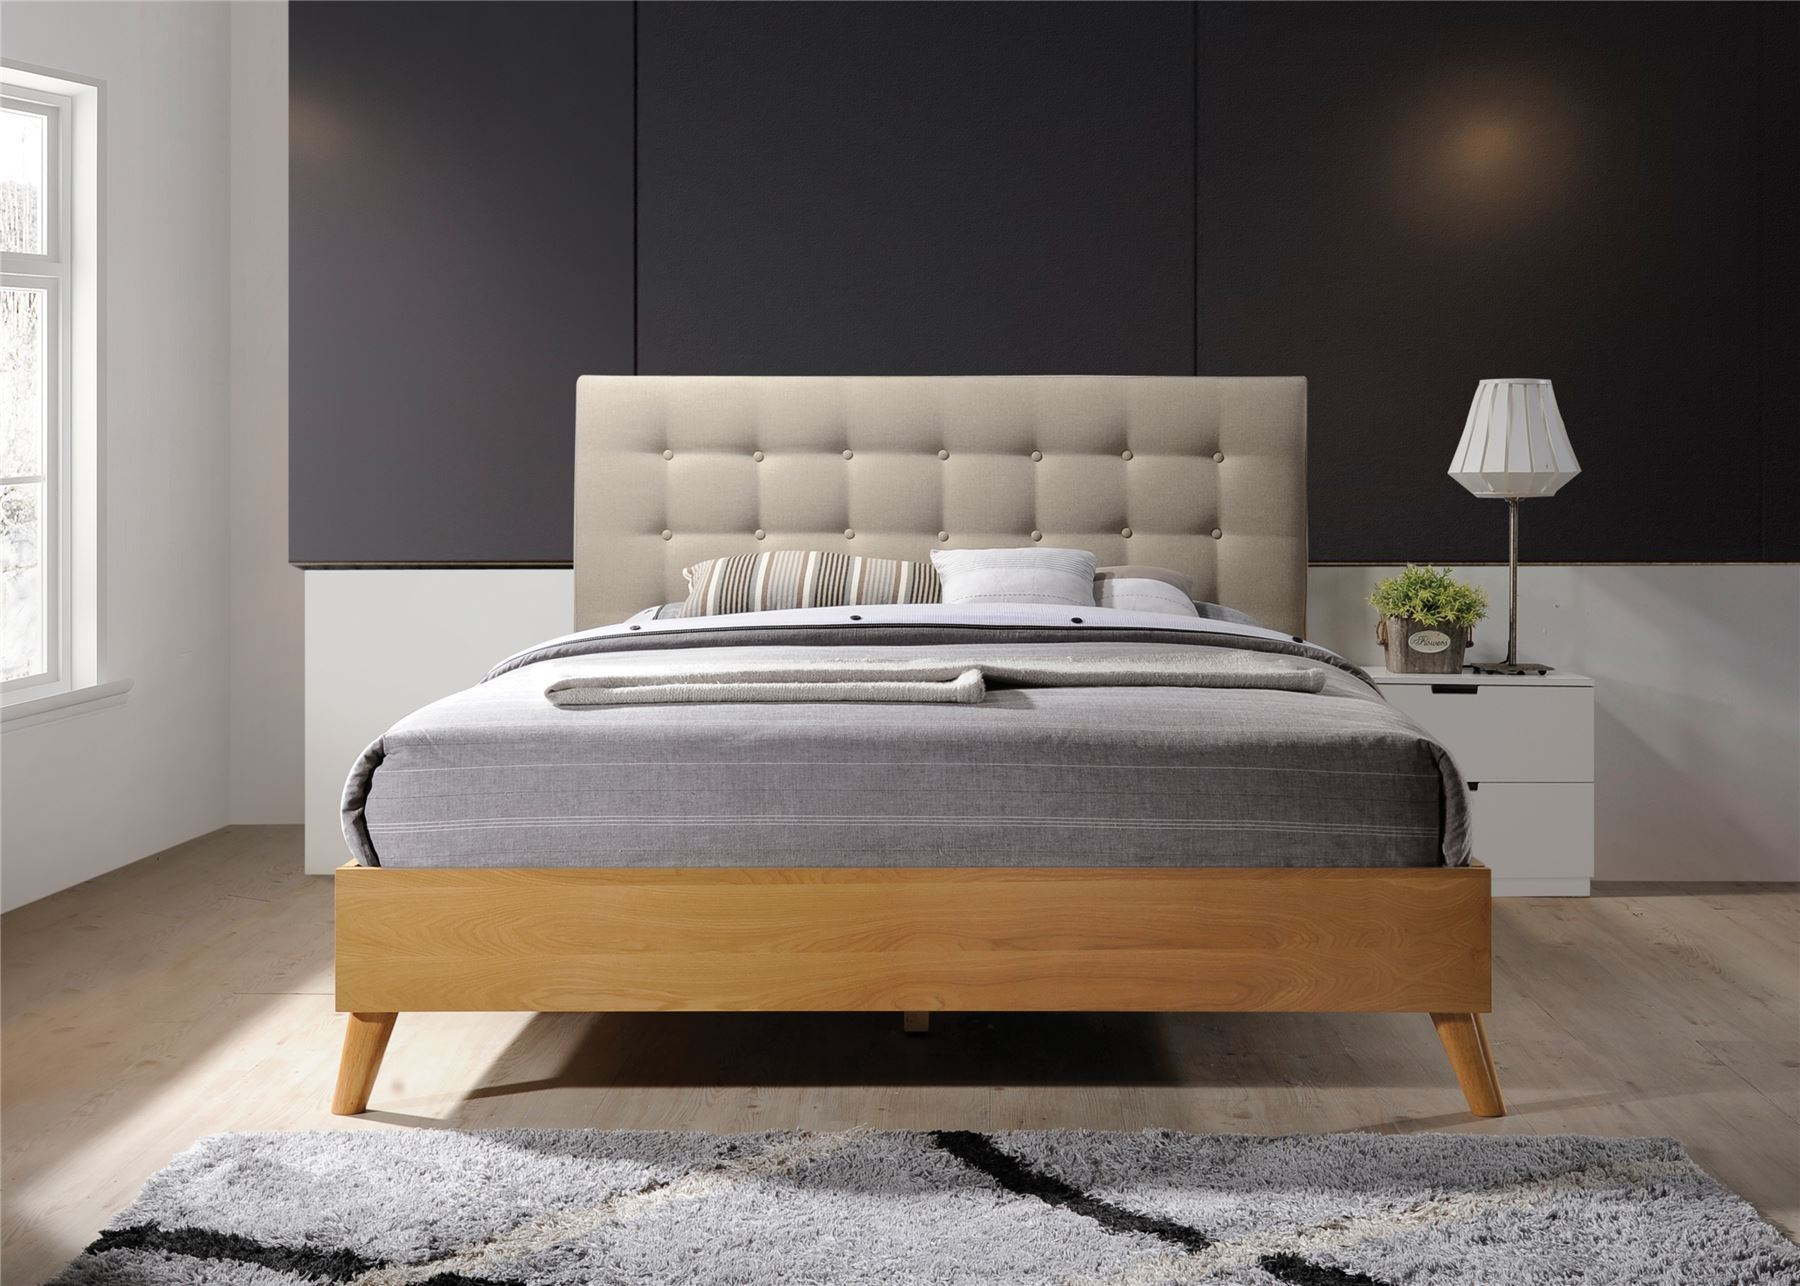 Scandi Style Bedding Gino Bed Frame Beige Fabric Oak Wood King Size 5ft 150cm